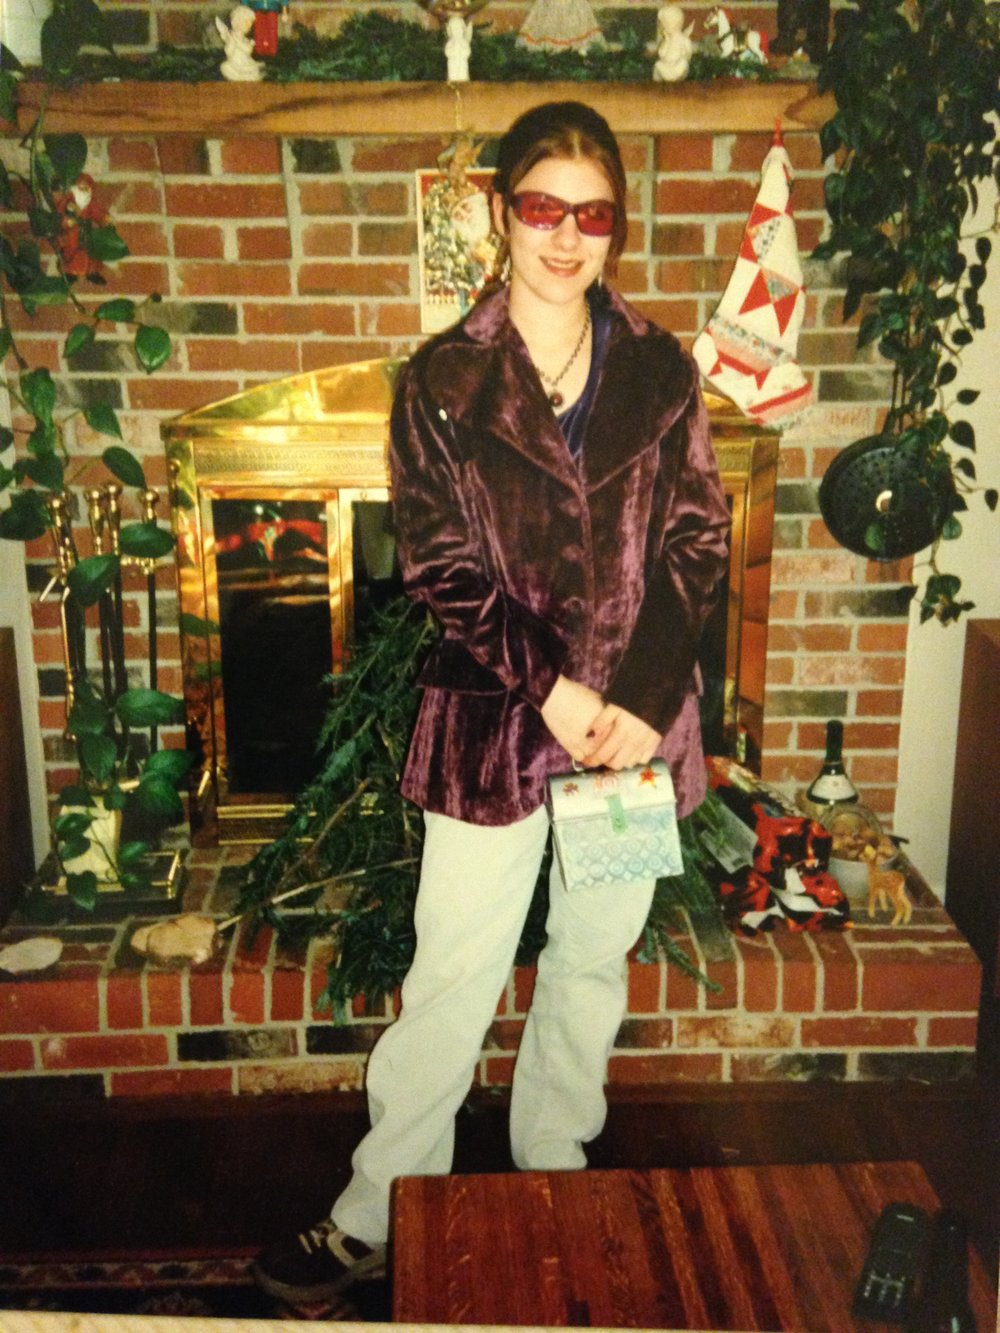 ...The purple phase... Please note the holographic lunchbox purse!